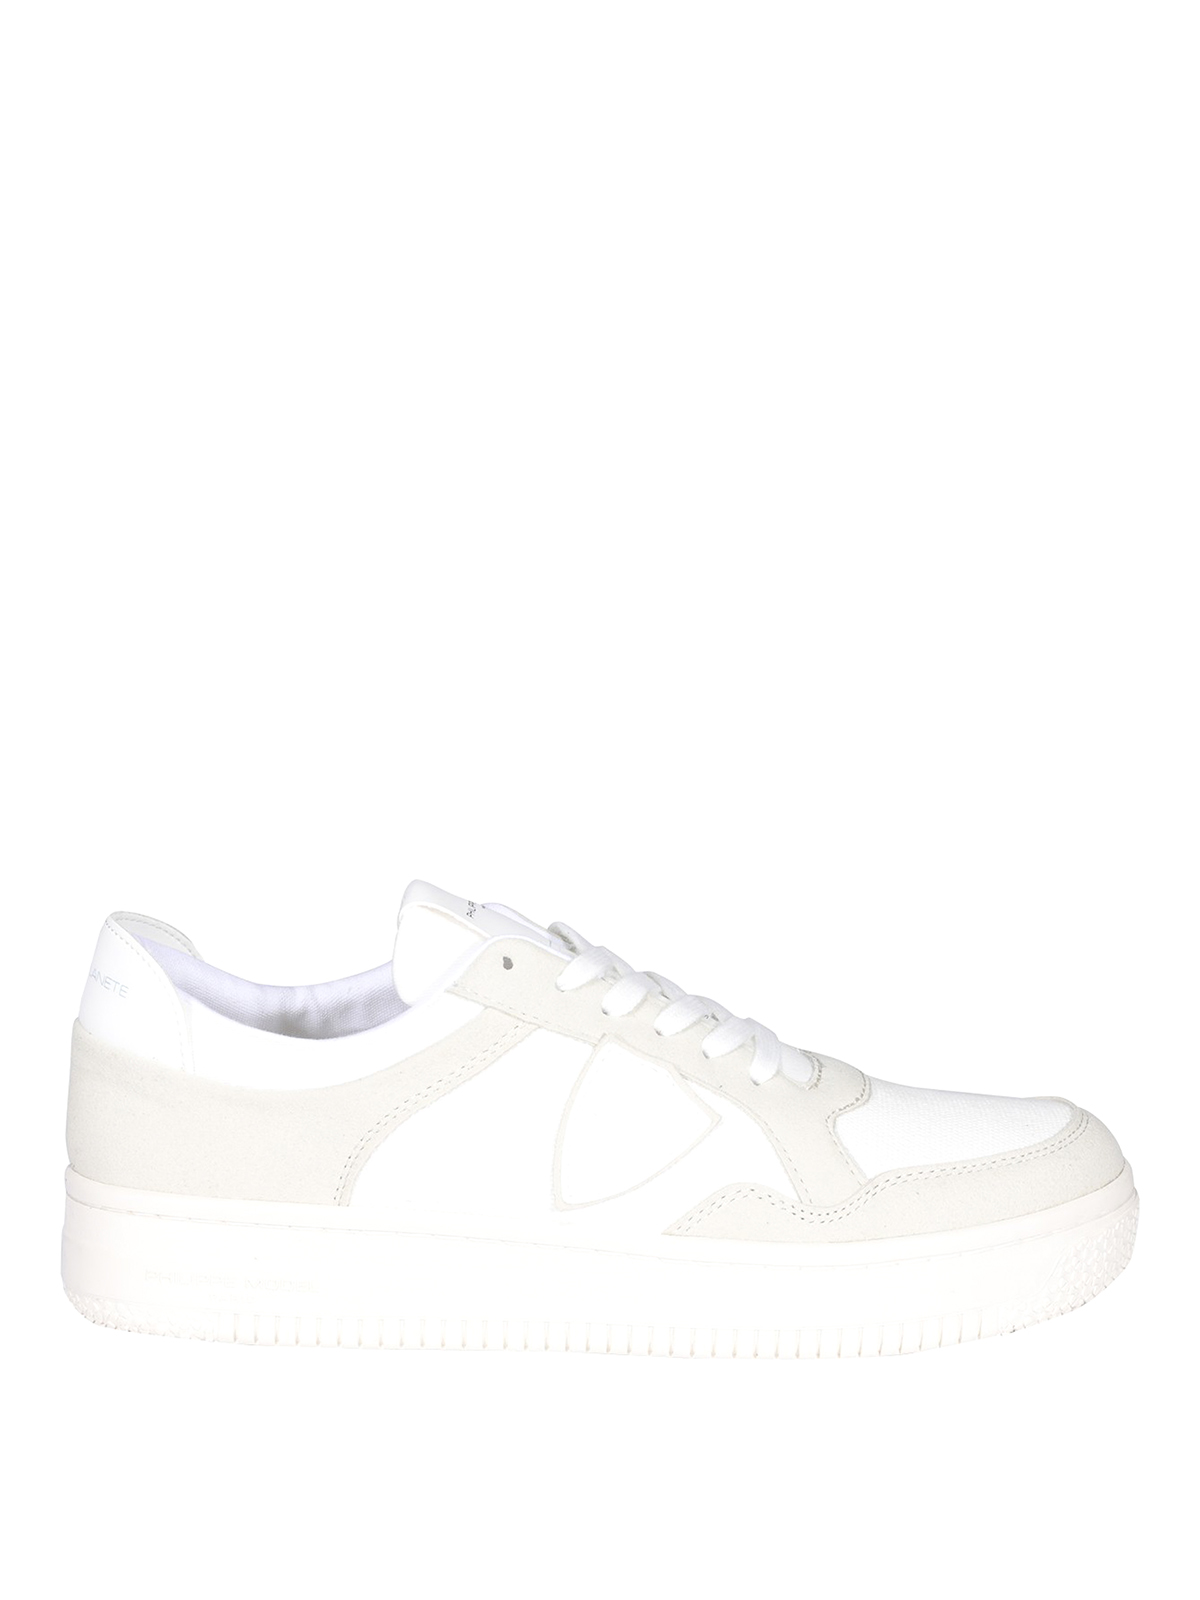 Philippe Model Low tops LYON COTON ECO-FRIENDLY SNEAKERS